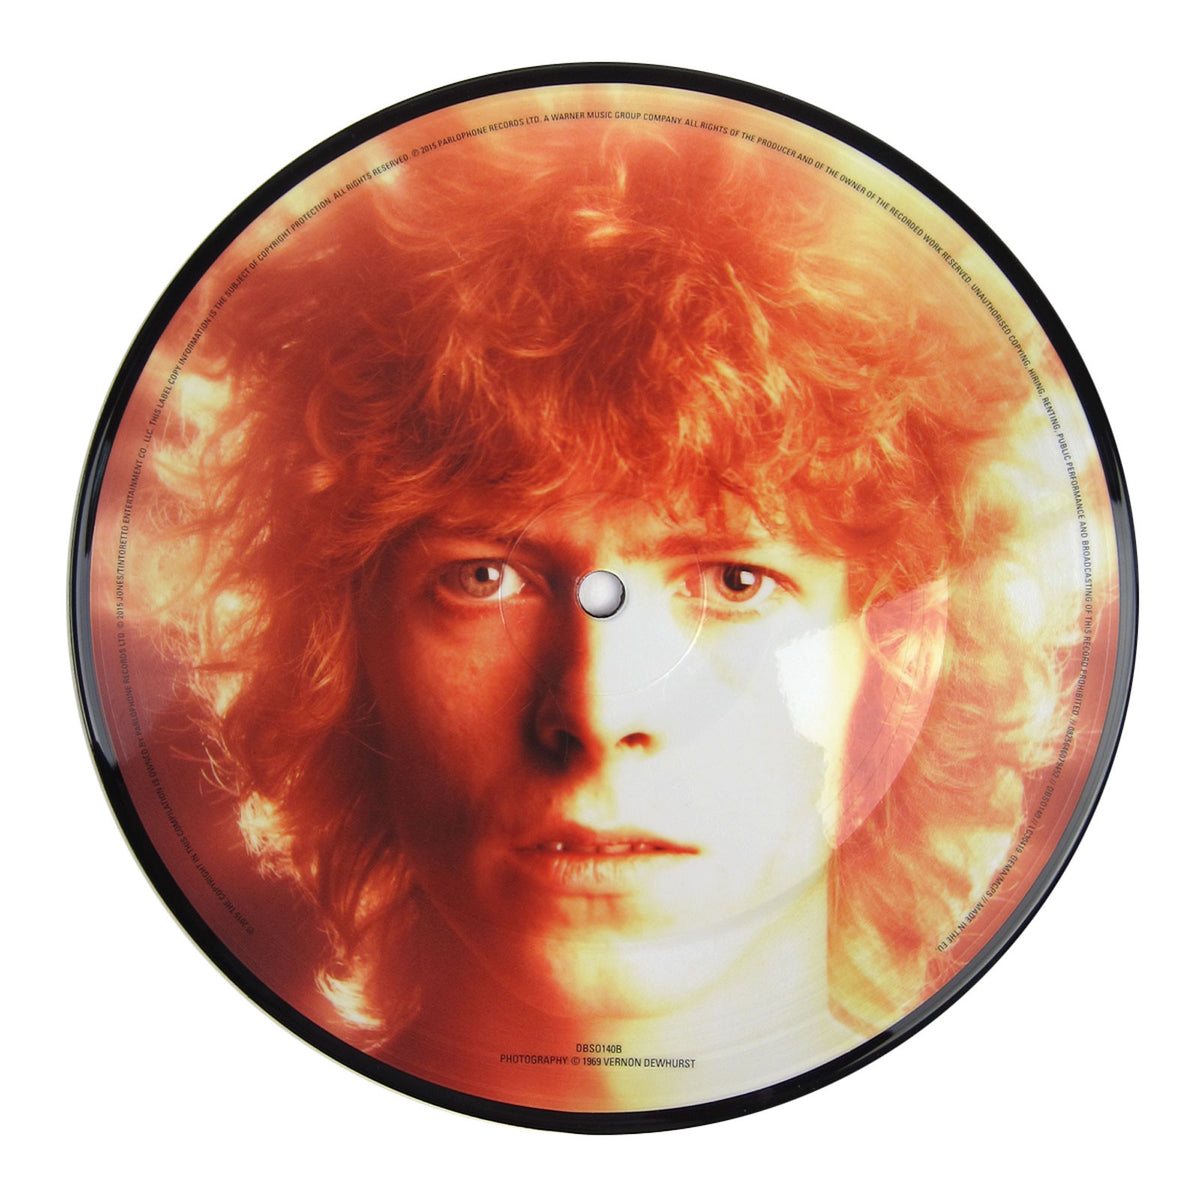 David Bowie: Space Oddity (Picture Disc) Vinyl 7""